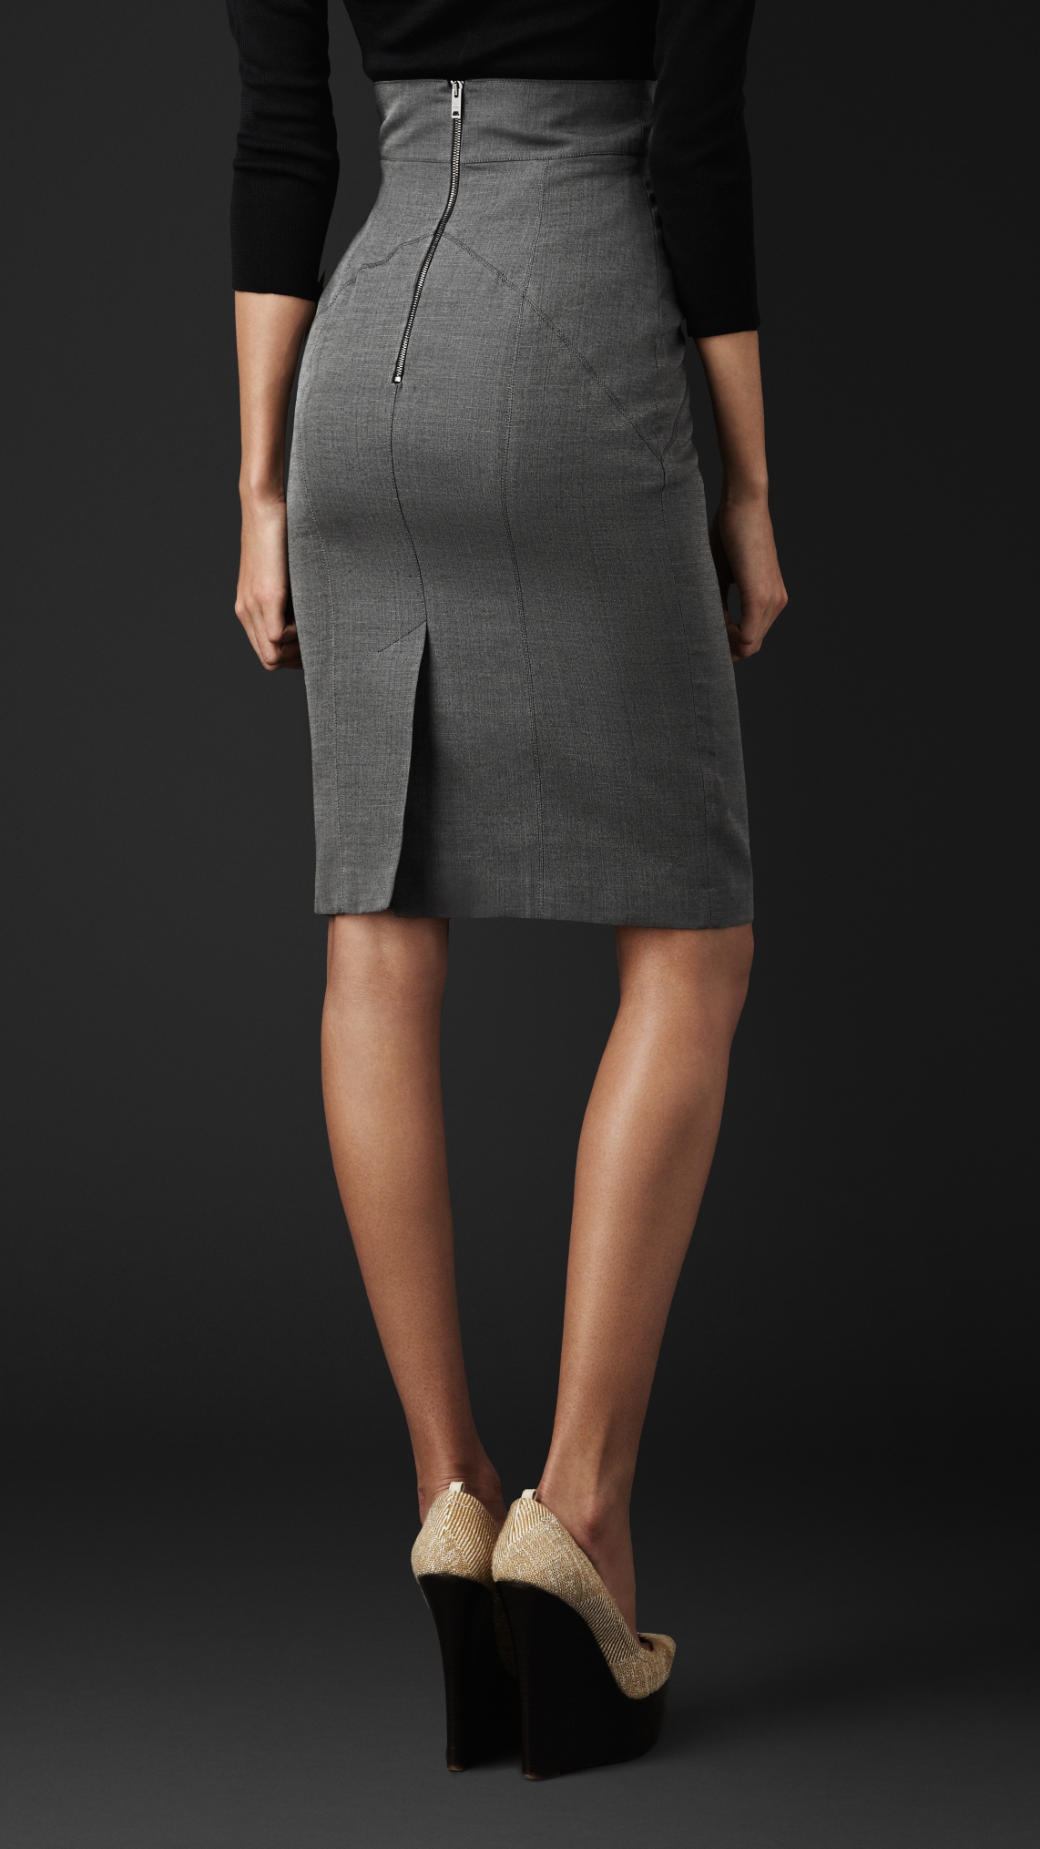 Burberry Cotton Silk Pencil Skirt in Mid Grey Melange